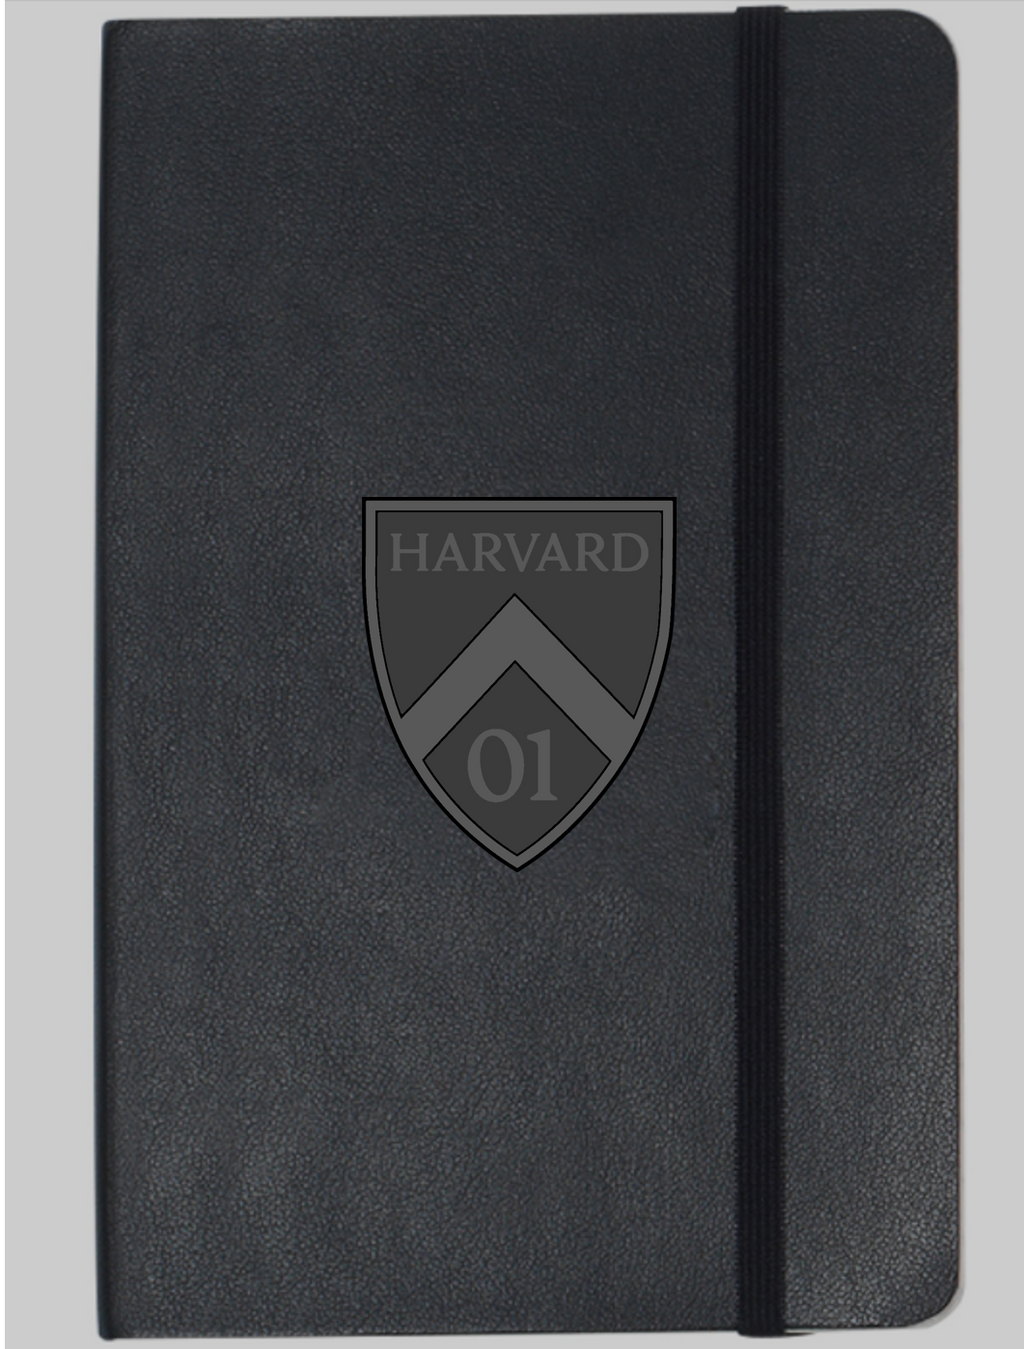 Harvard Class of 2001 20th Reunion Moleskine